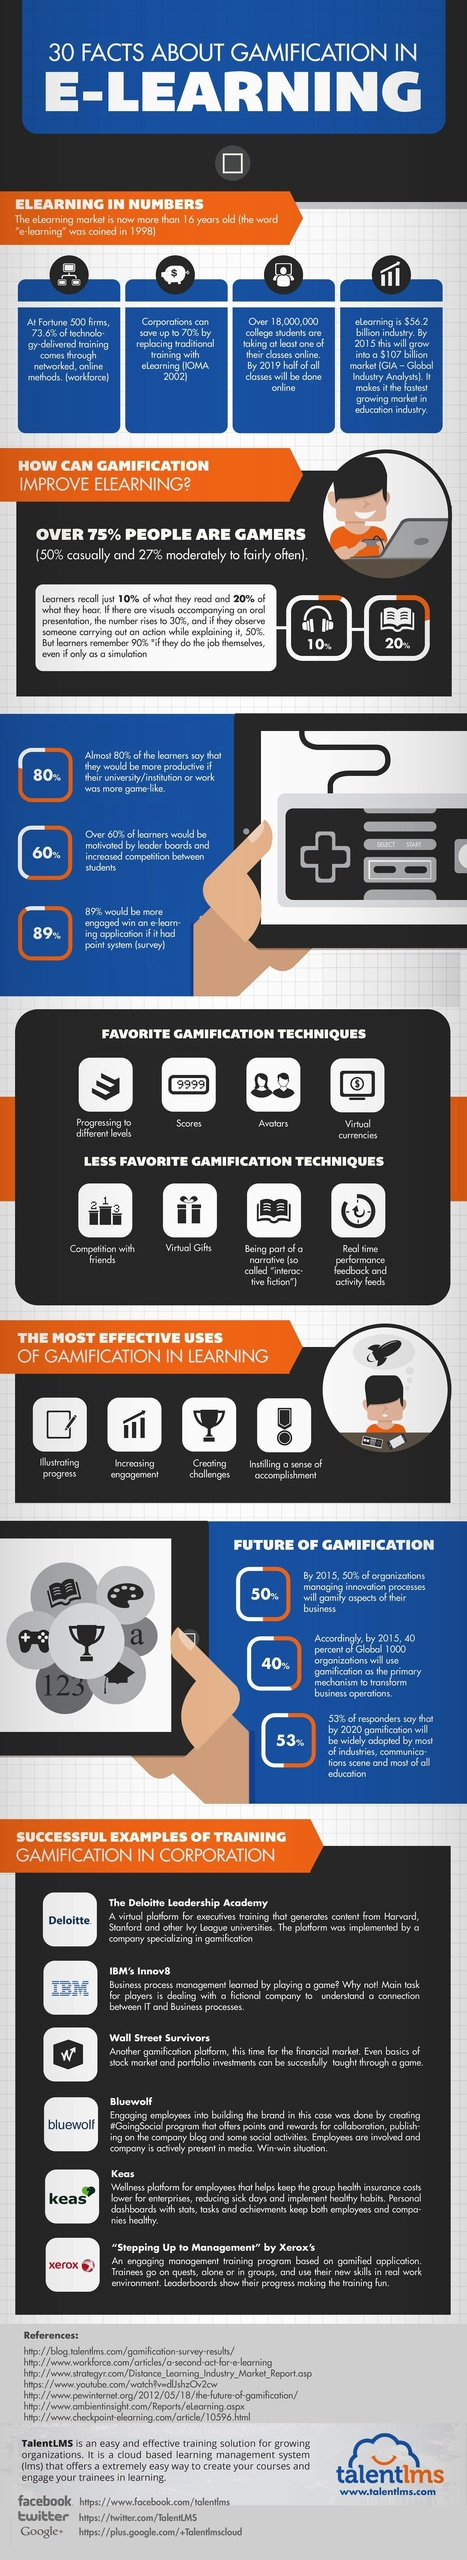 30 Facts About Gamification in eLearning Infographic - e-Learning Infographics | EdTech - Tips & Tools | Scoop.it